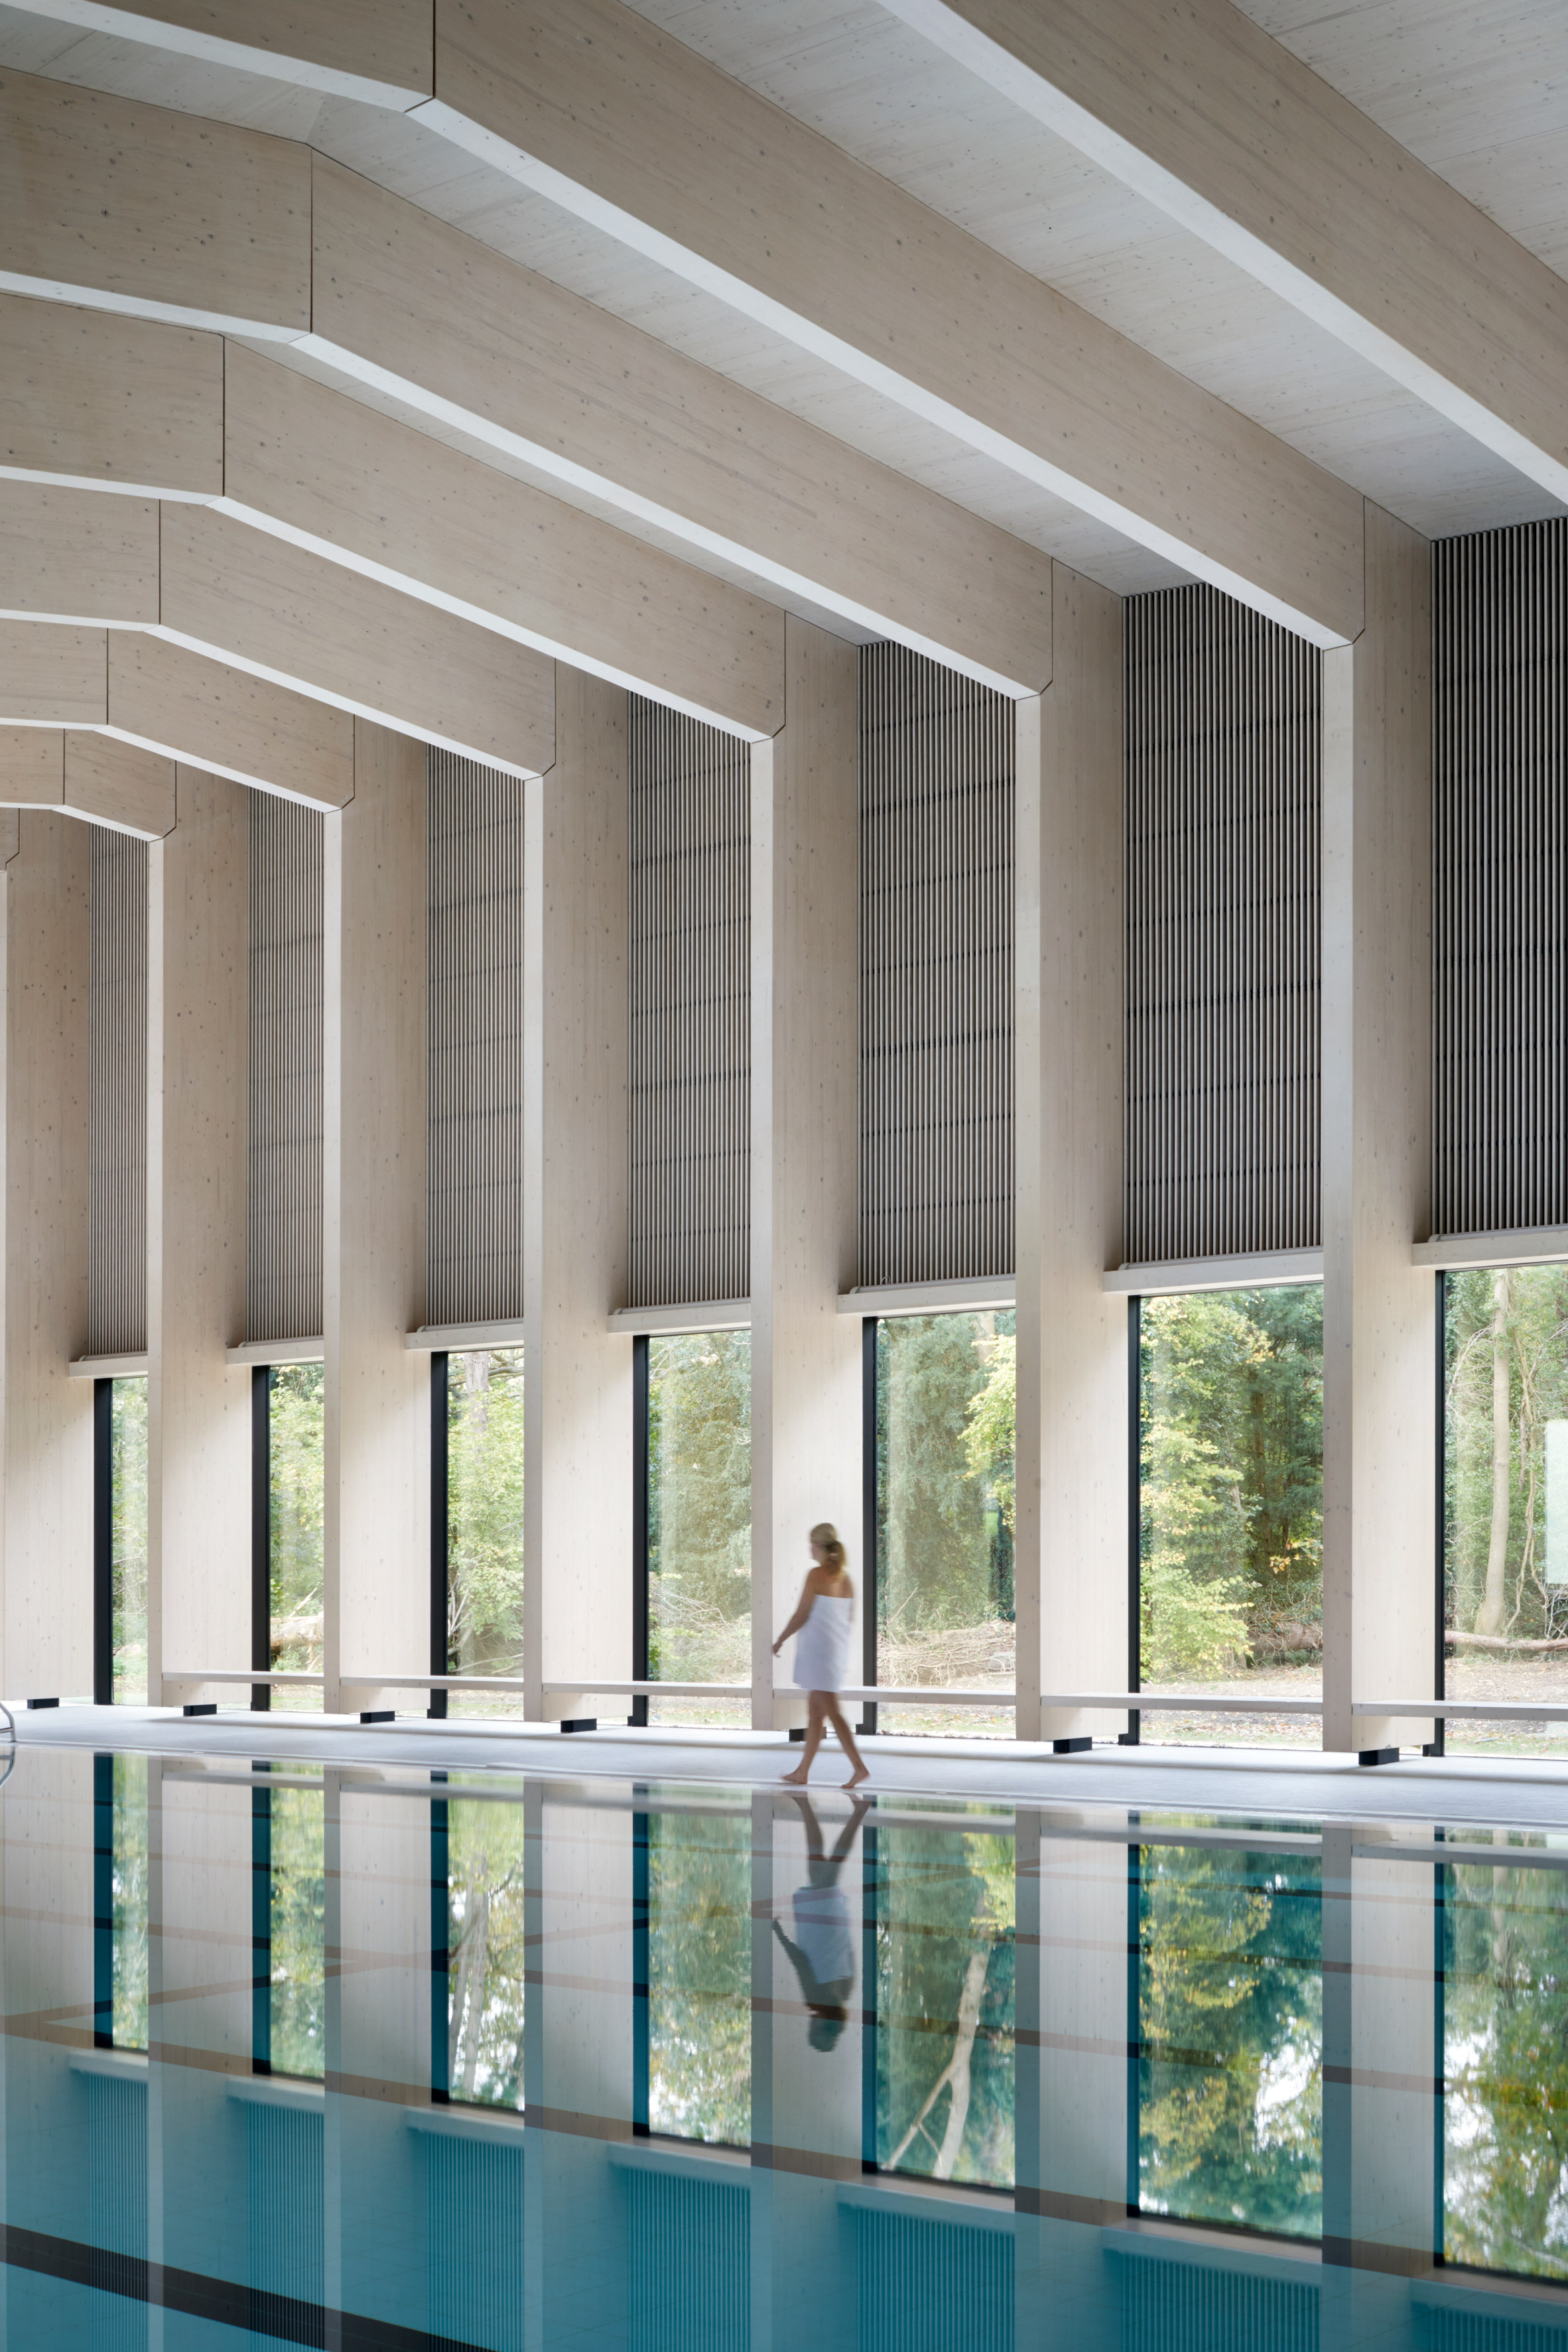 Hawkins\Brown uses engineered wood to build swimming pool for City of London Freemen's School